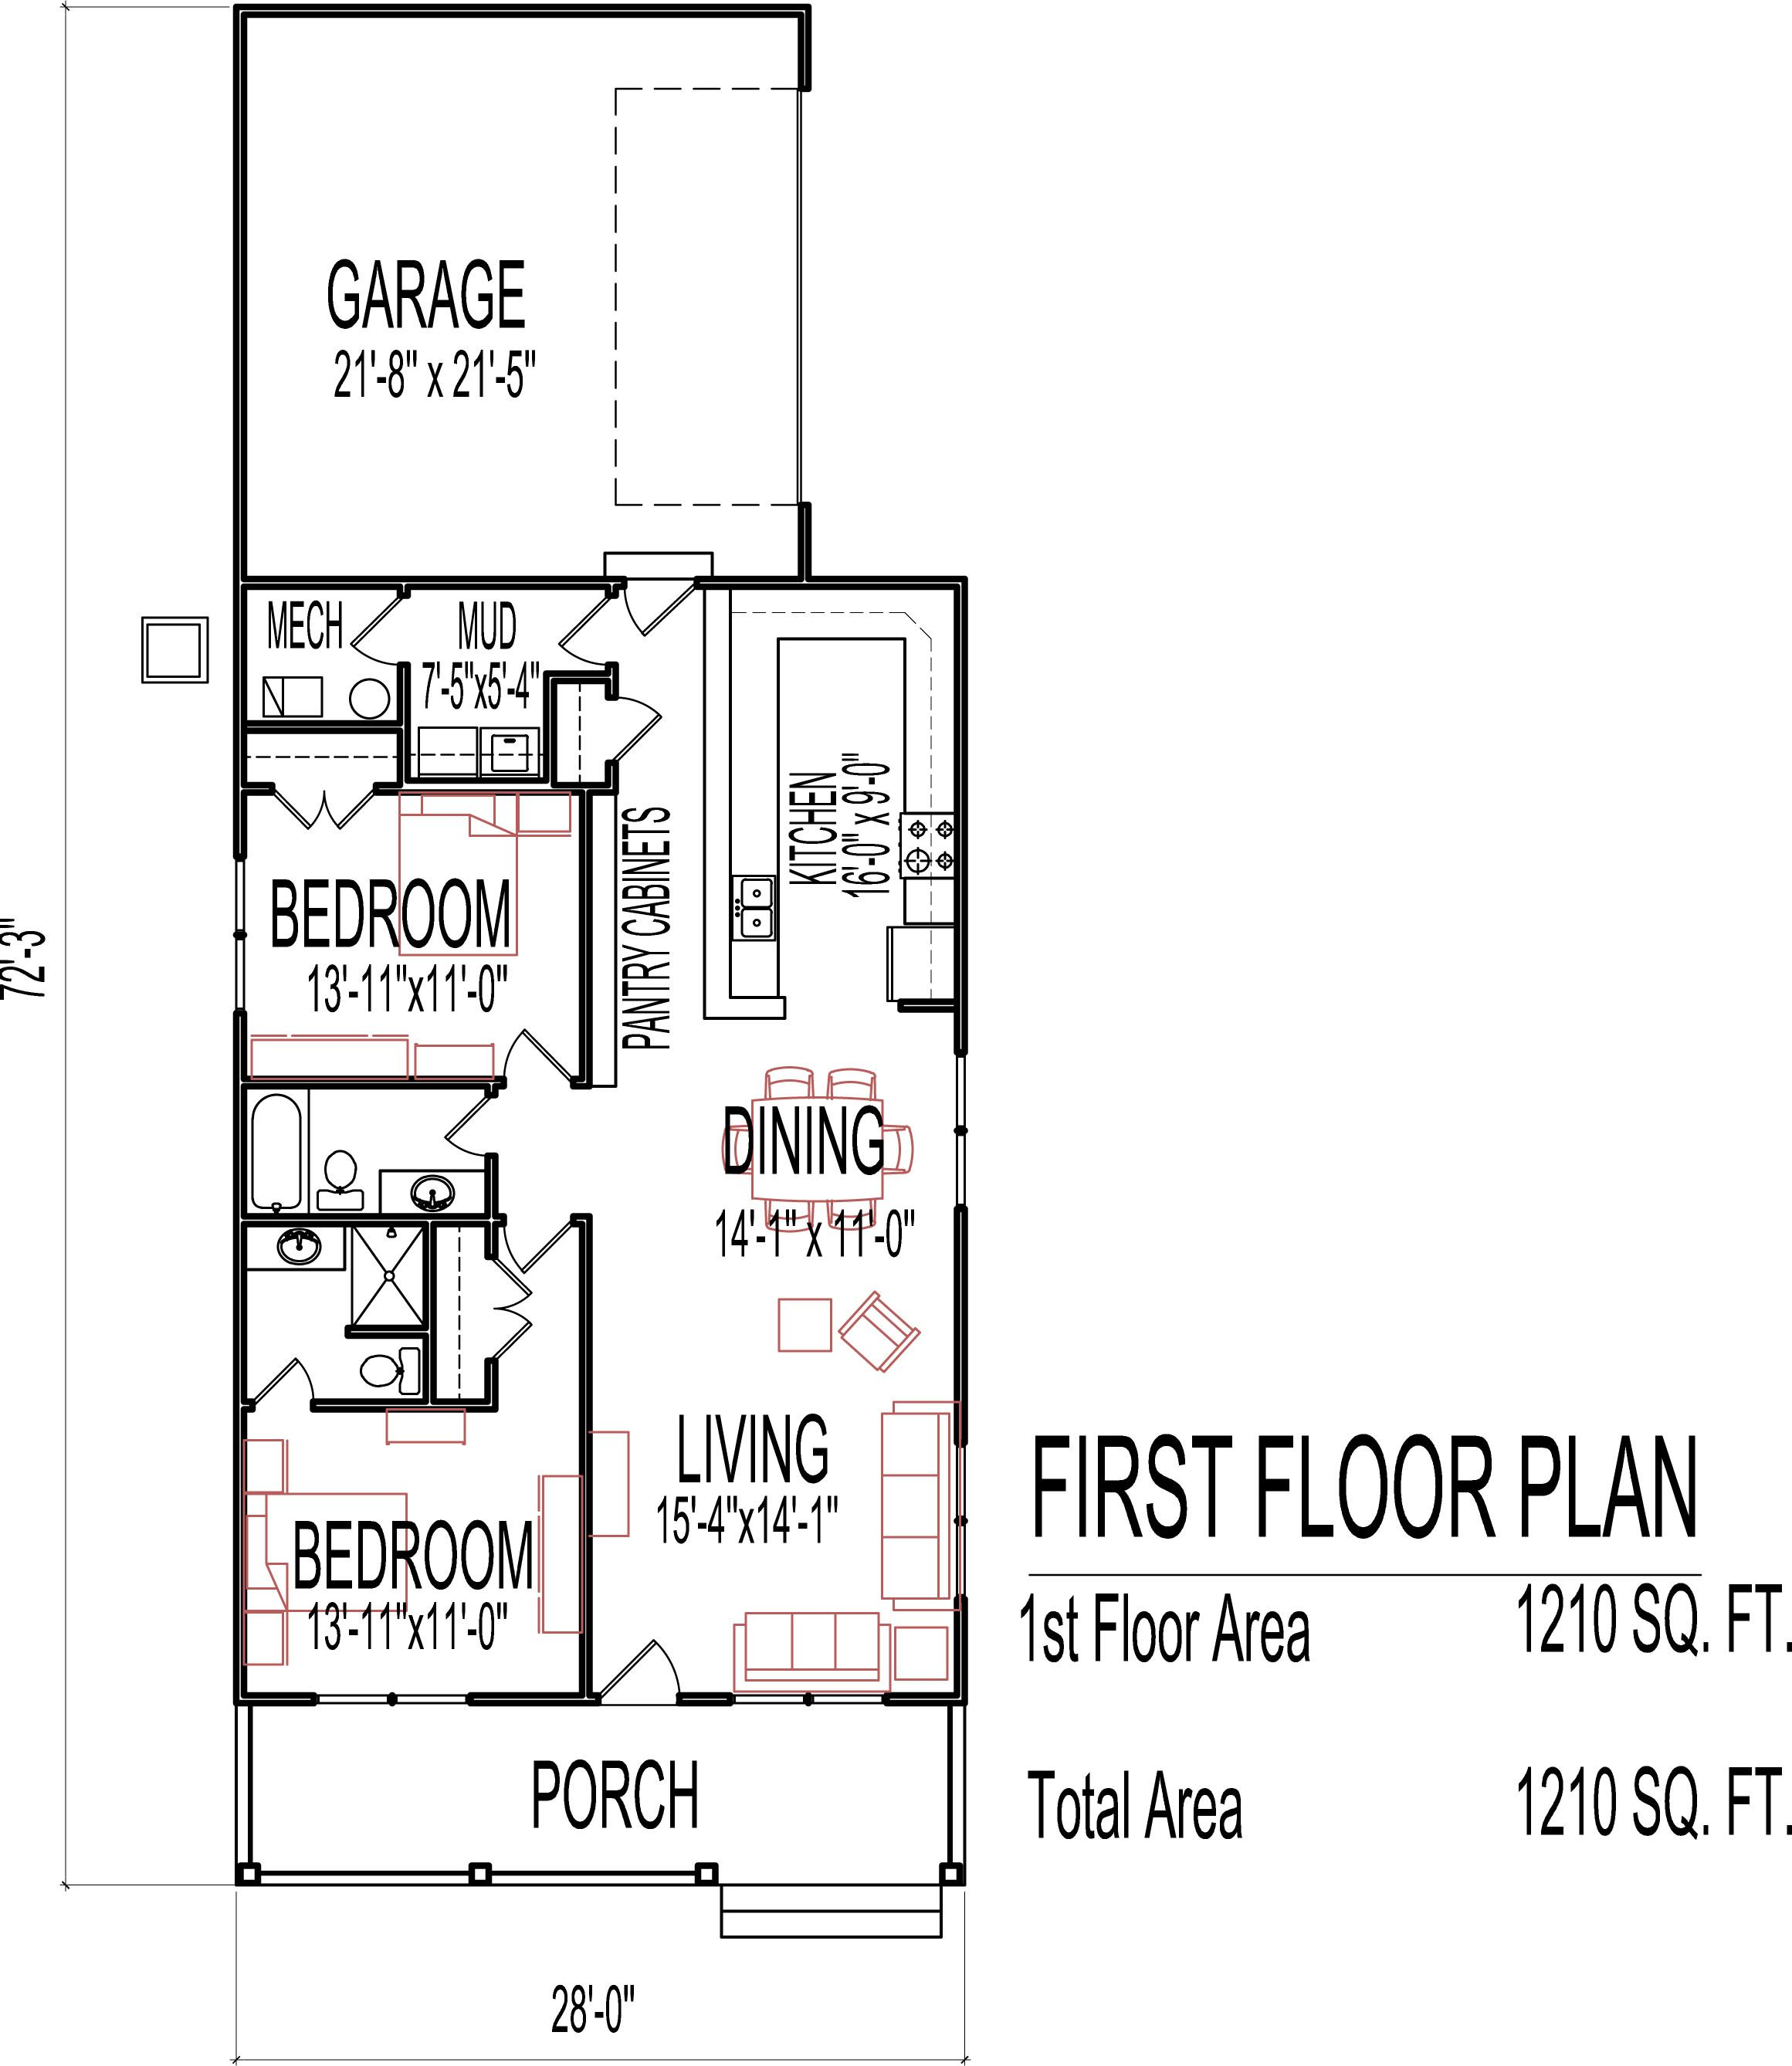 Small low cost economical 2 bedroom 2 bath 1200 sq ft for Single story house plans